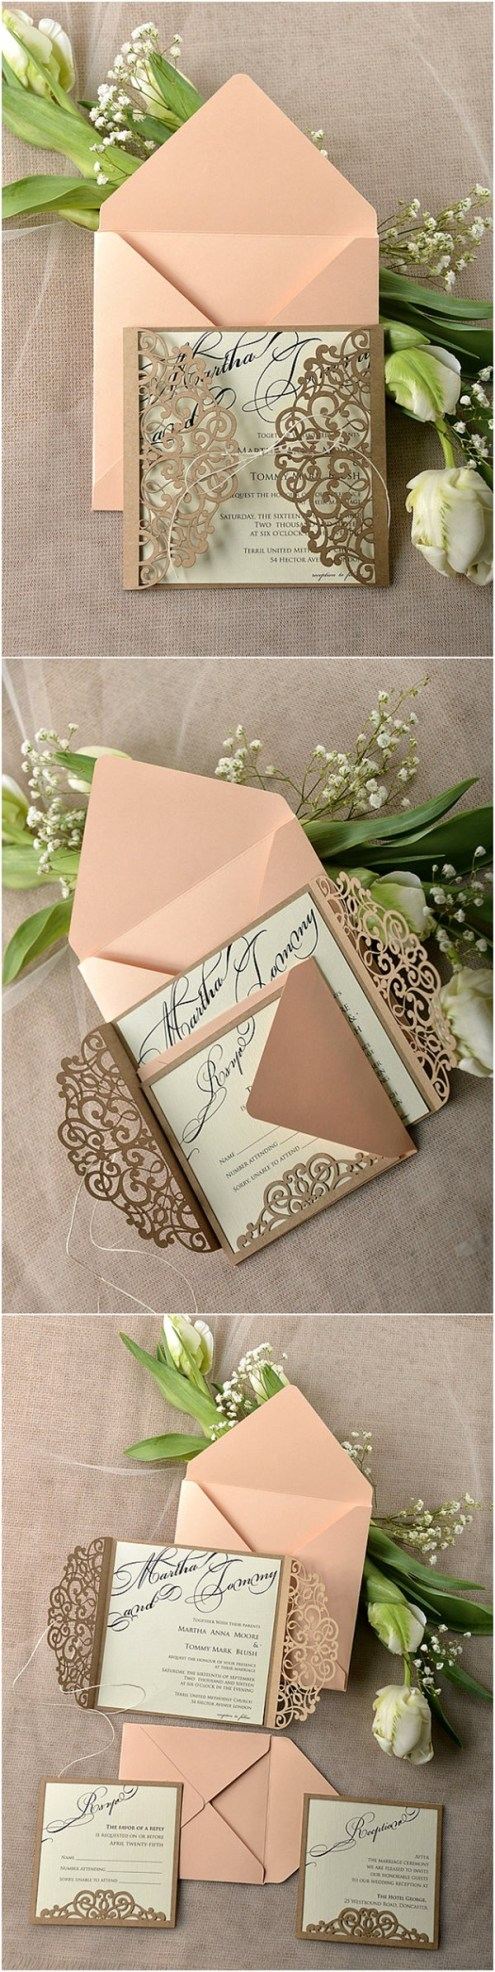 Photo Source: http://www.deerpearlflowers.com/rustic-wedding-invitations/